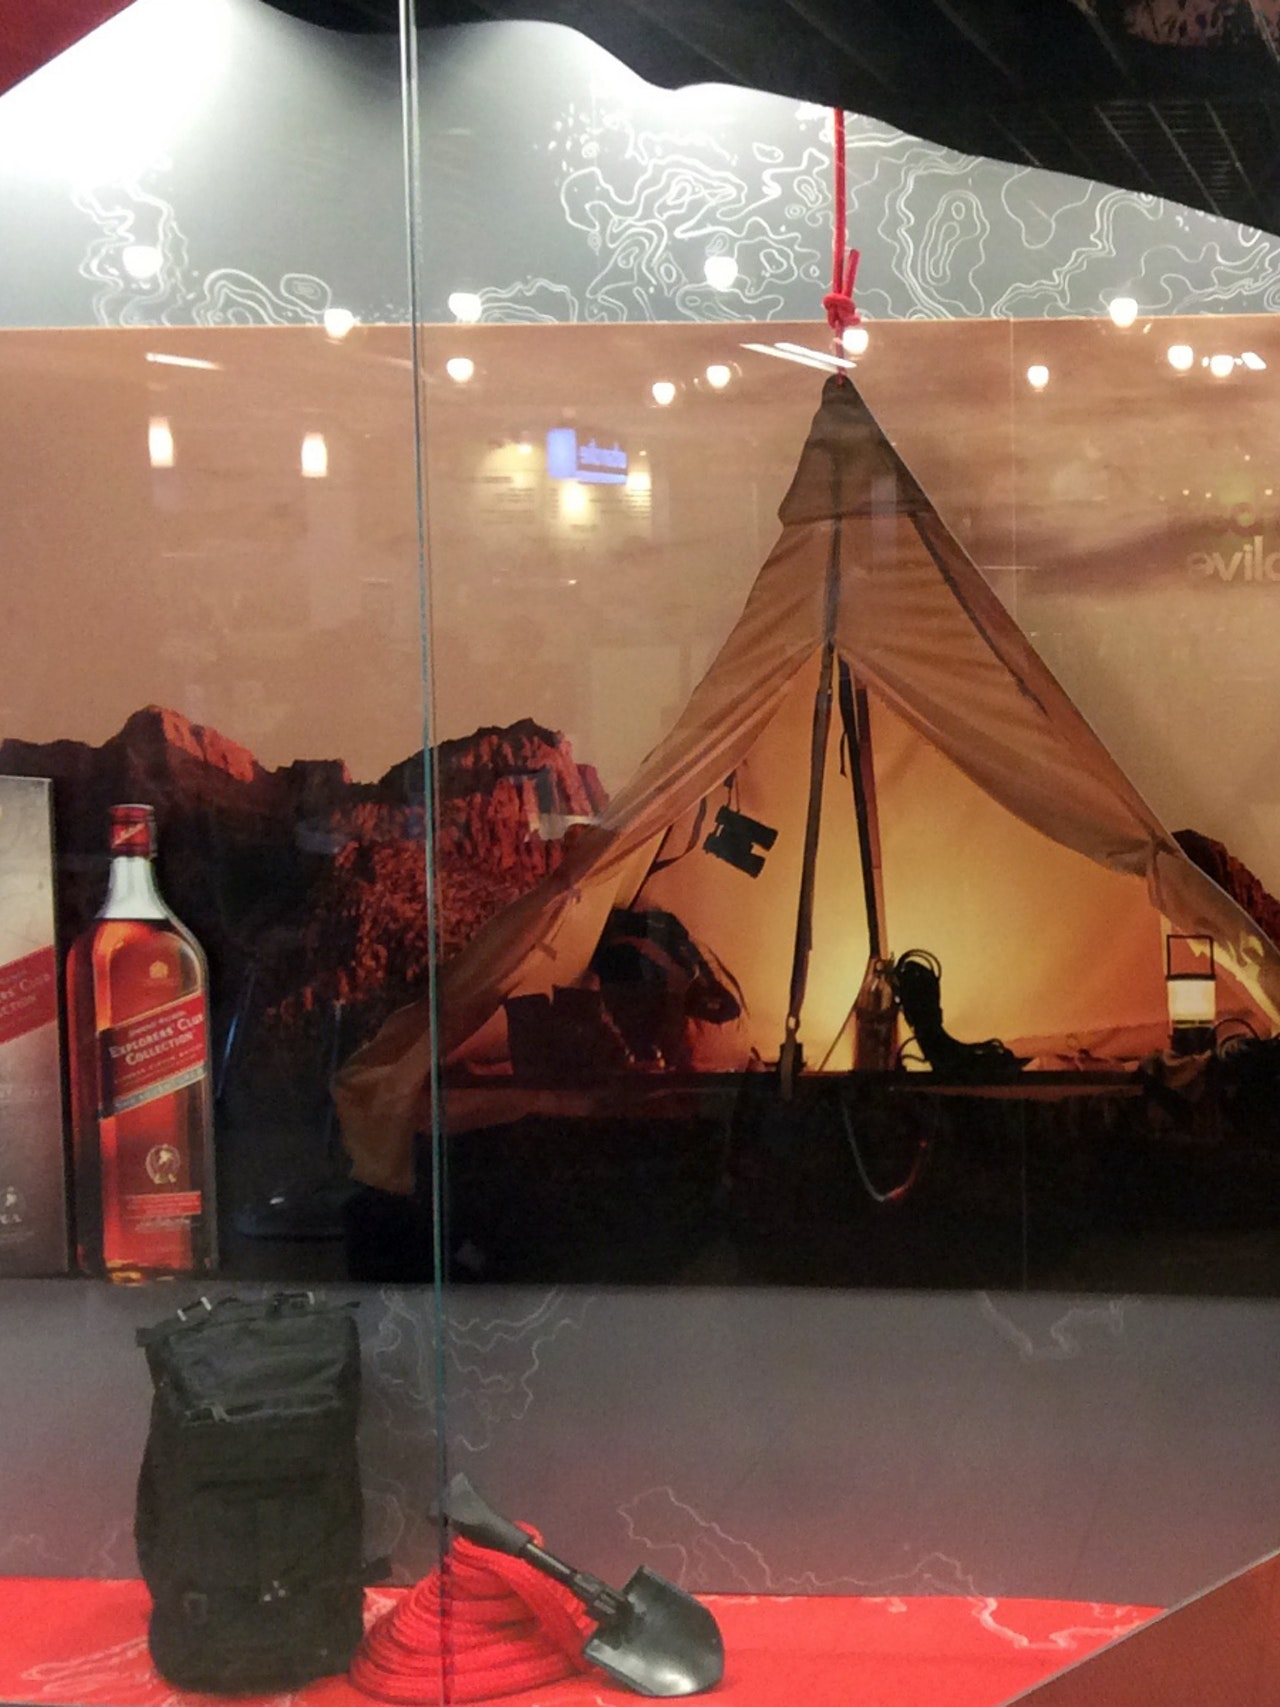 JOHNNIE WALKER THE ADVENTURER WINDOW DISPLAYS